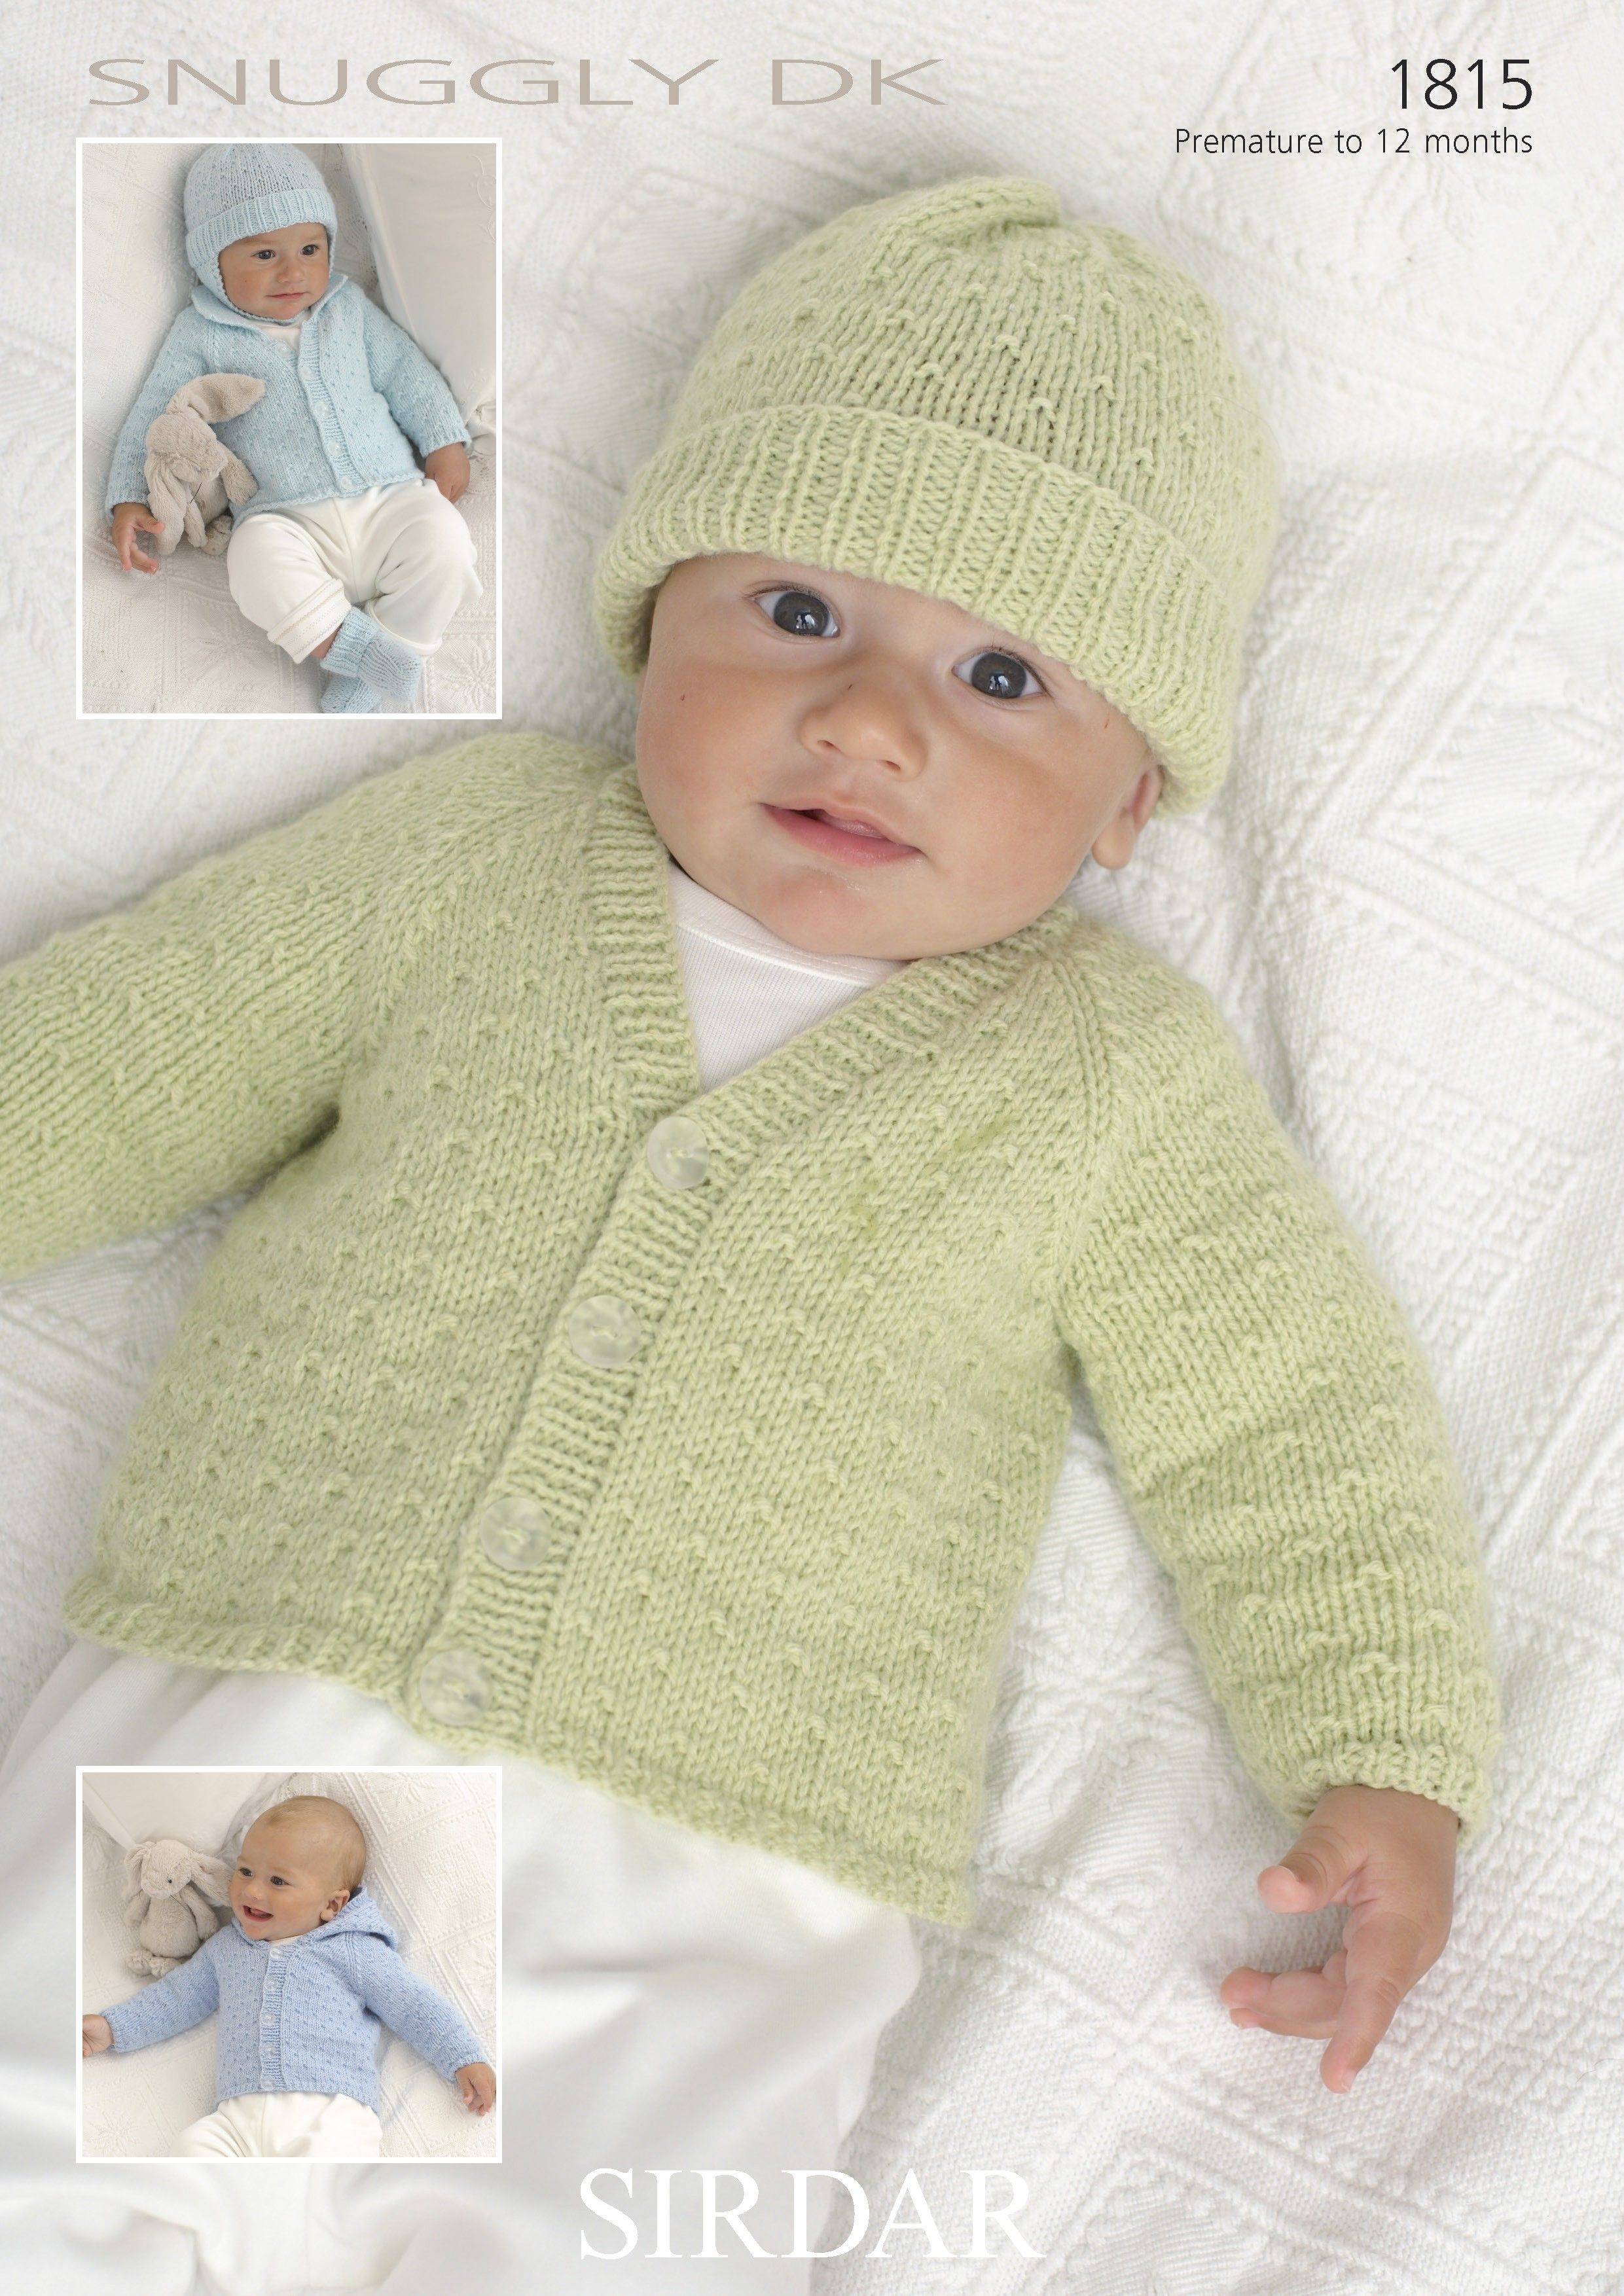 Sirdar 1815 Snuggly DK (downloadable PDF) - Wool Warehouse ...